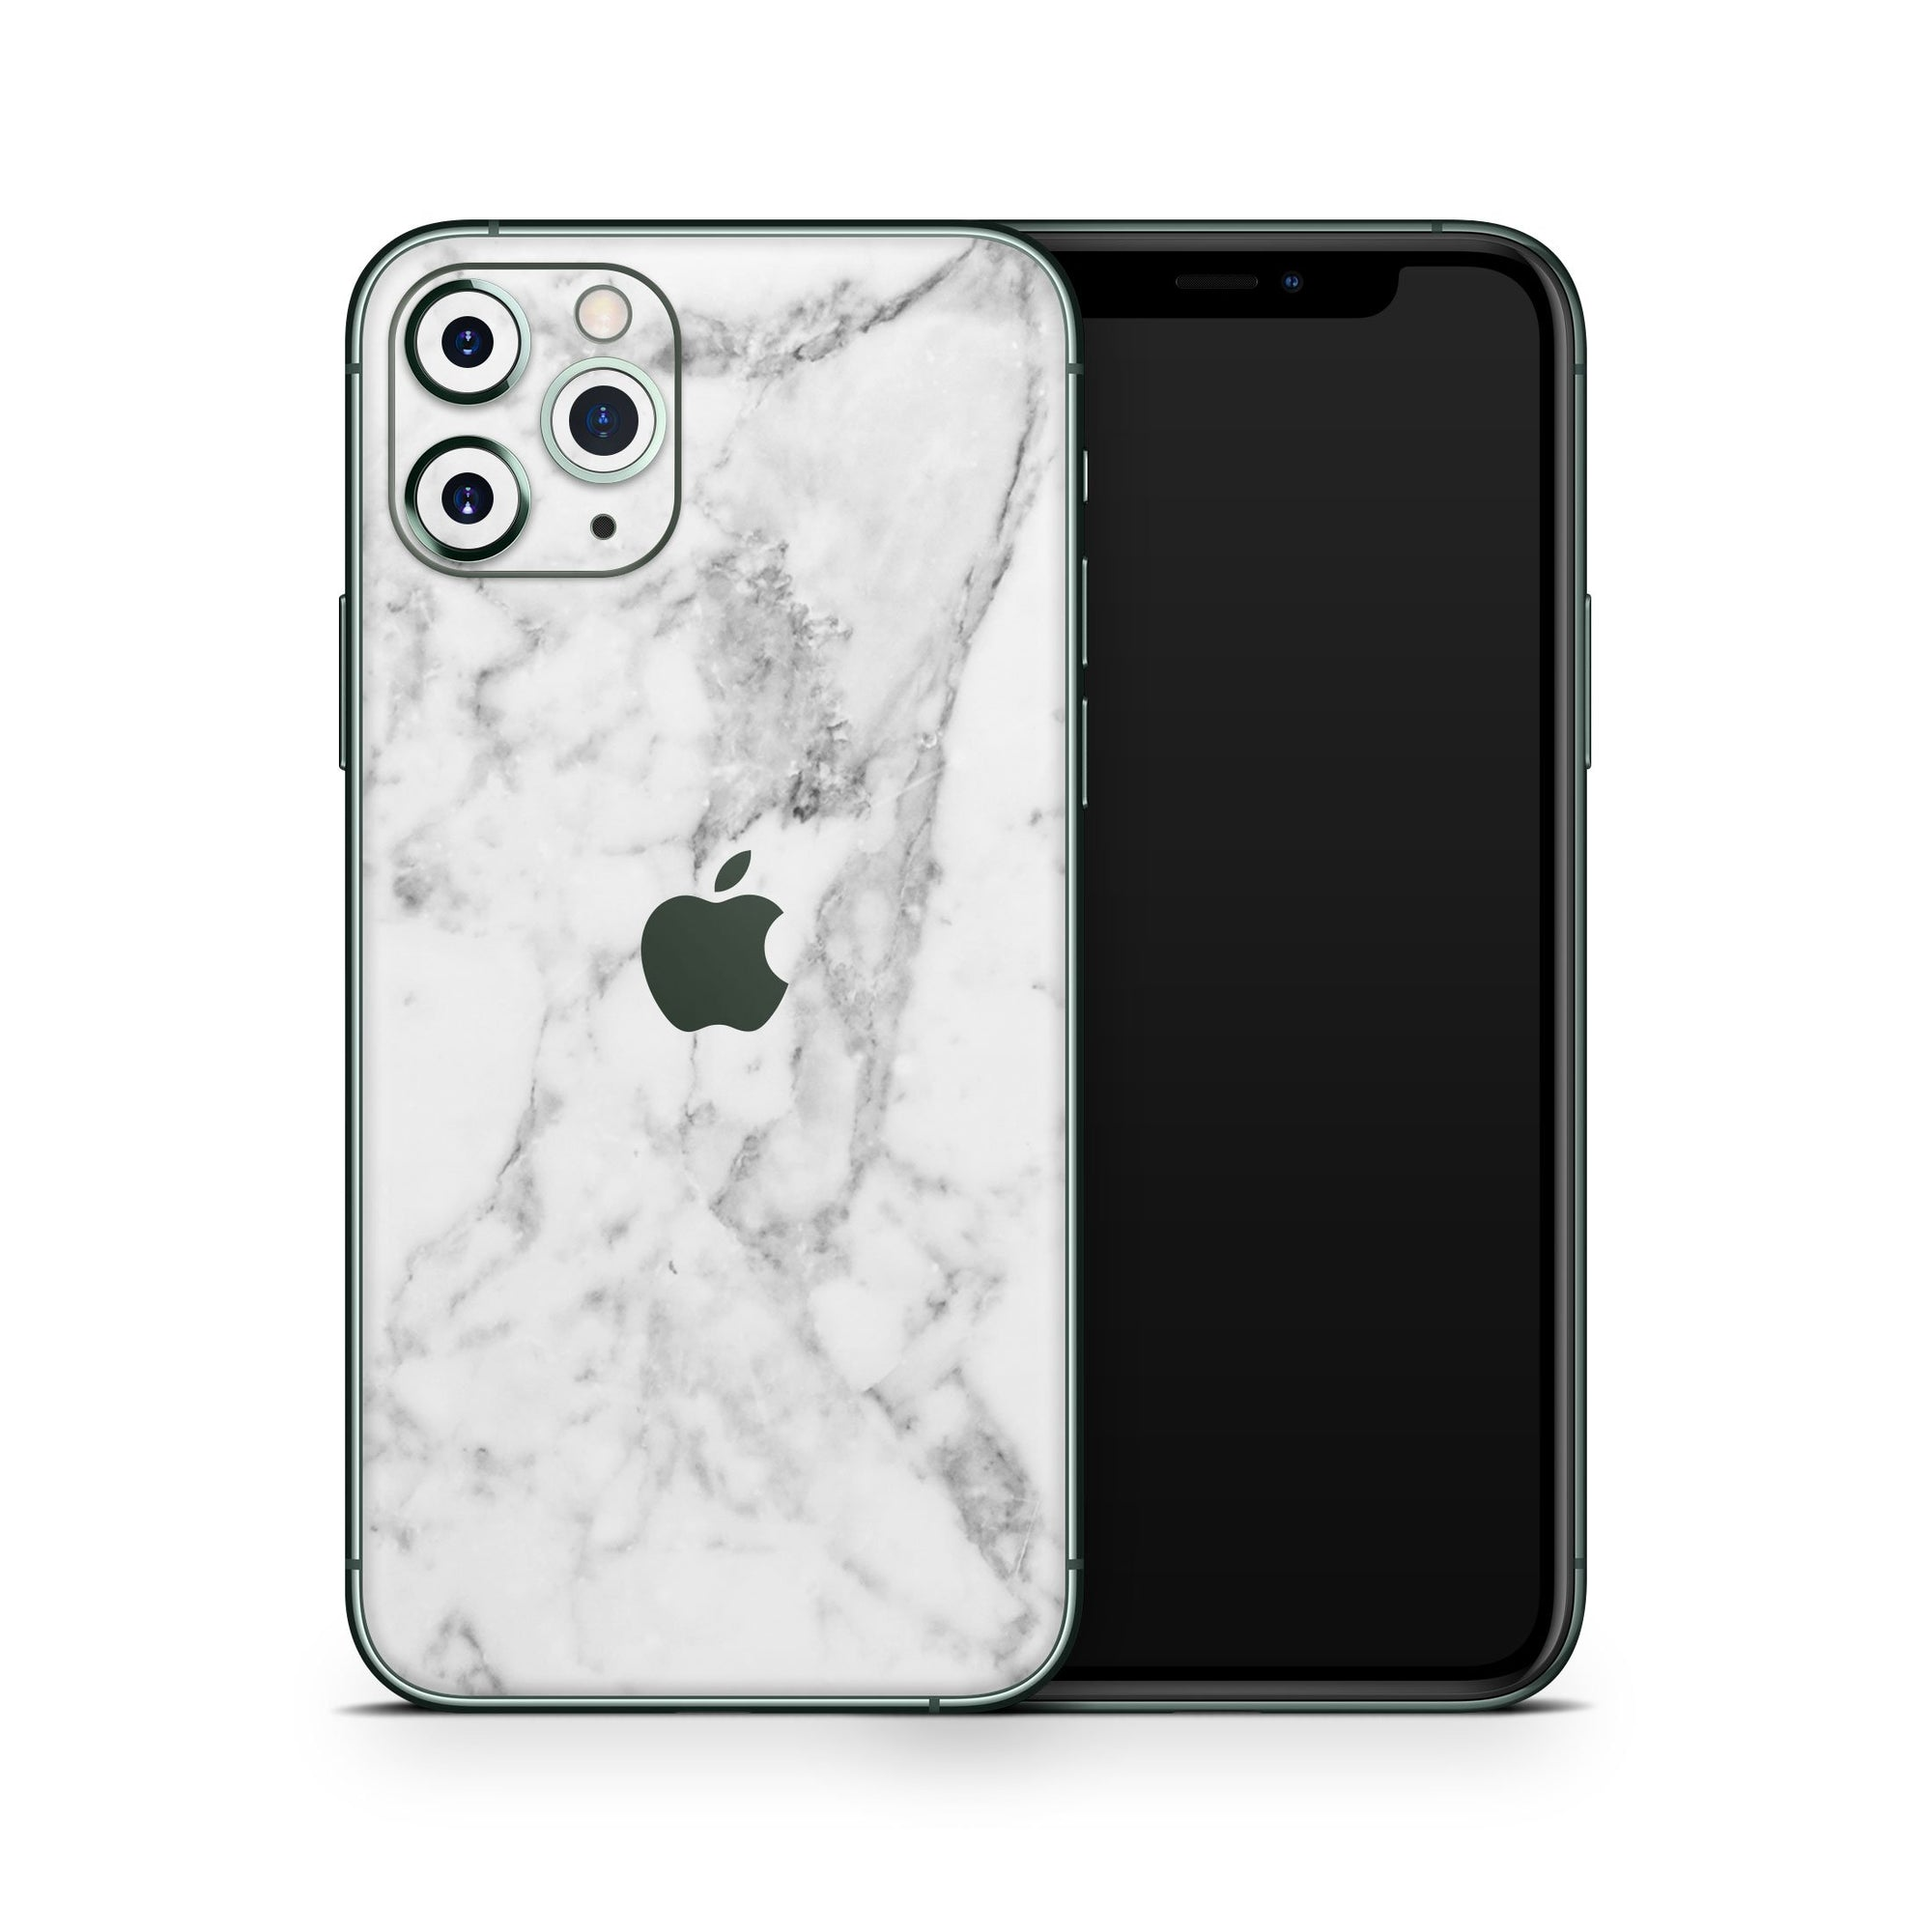 Best iPhone Marble Cover